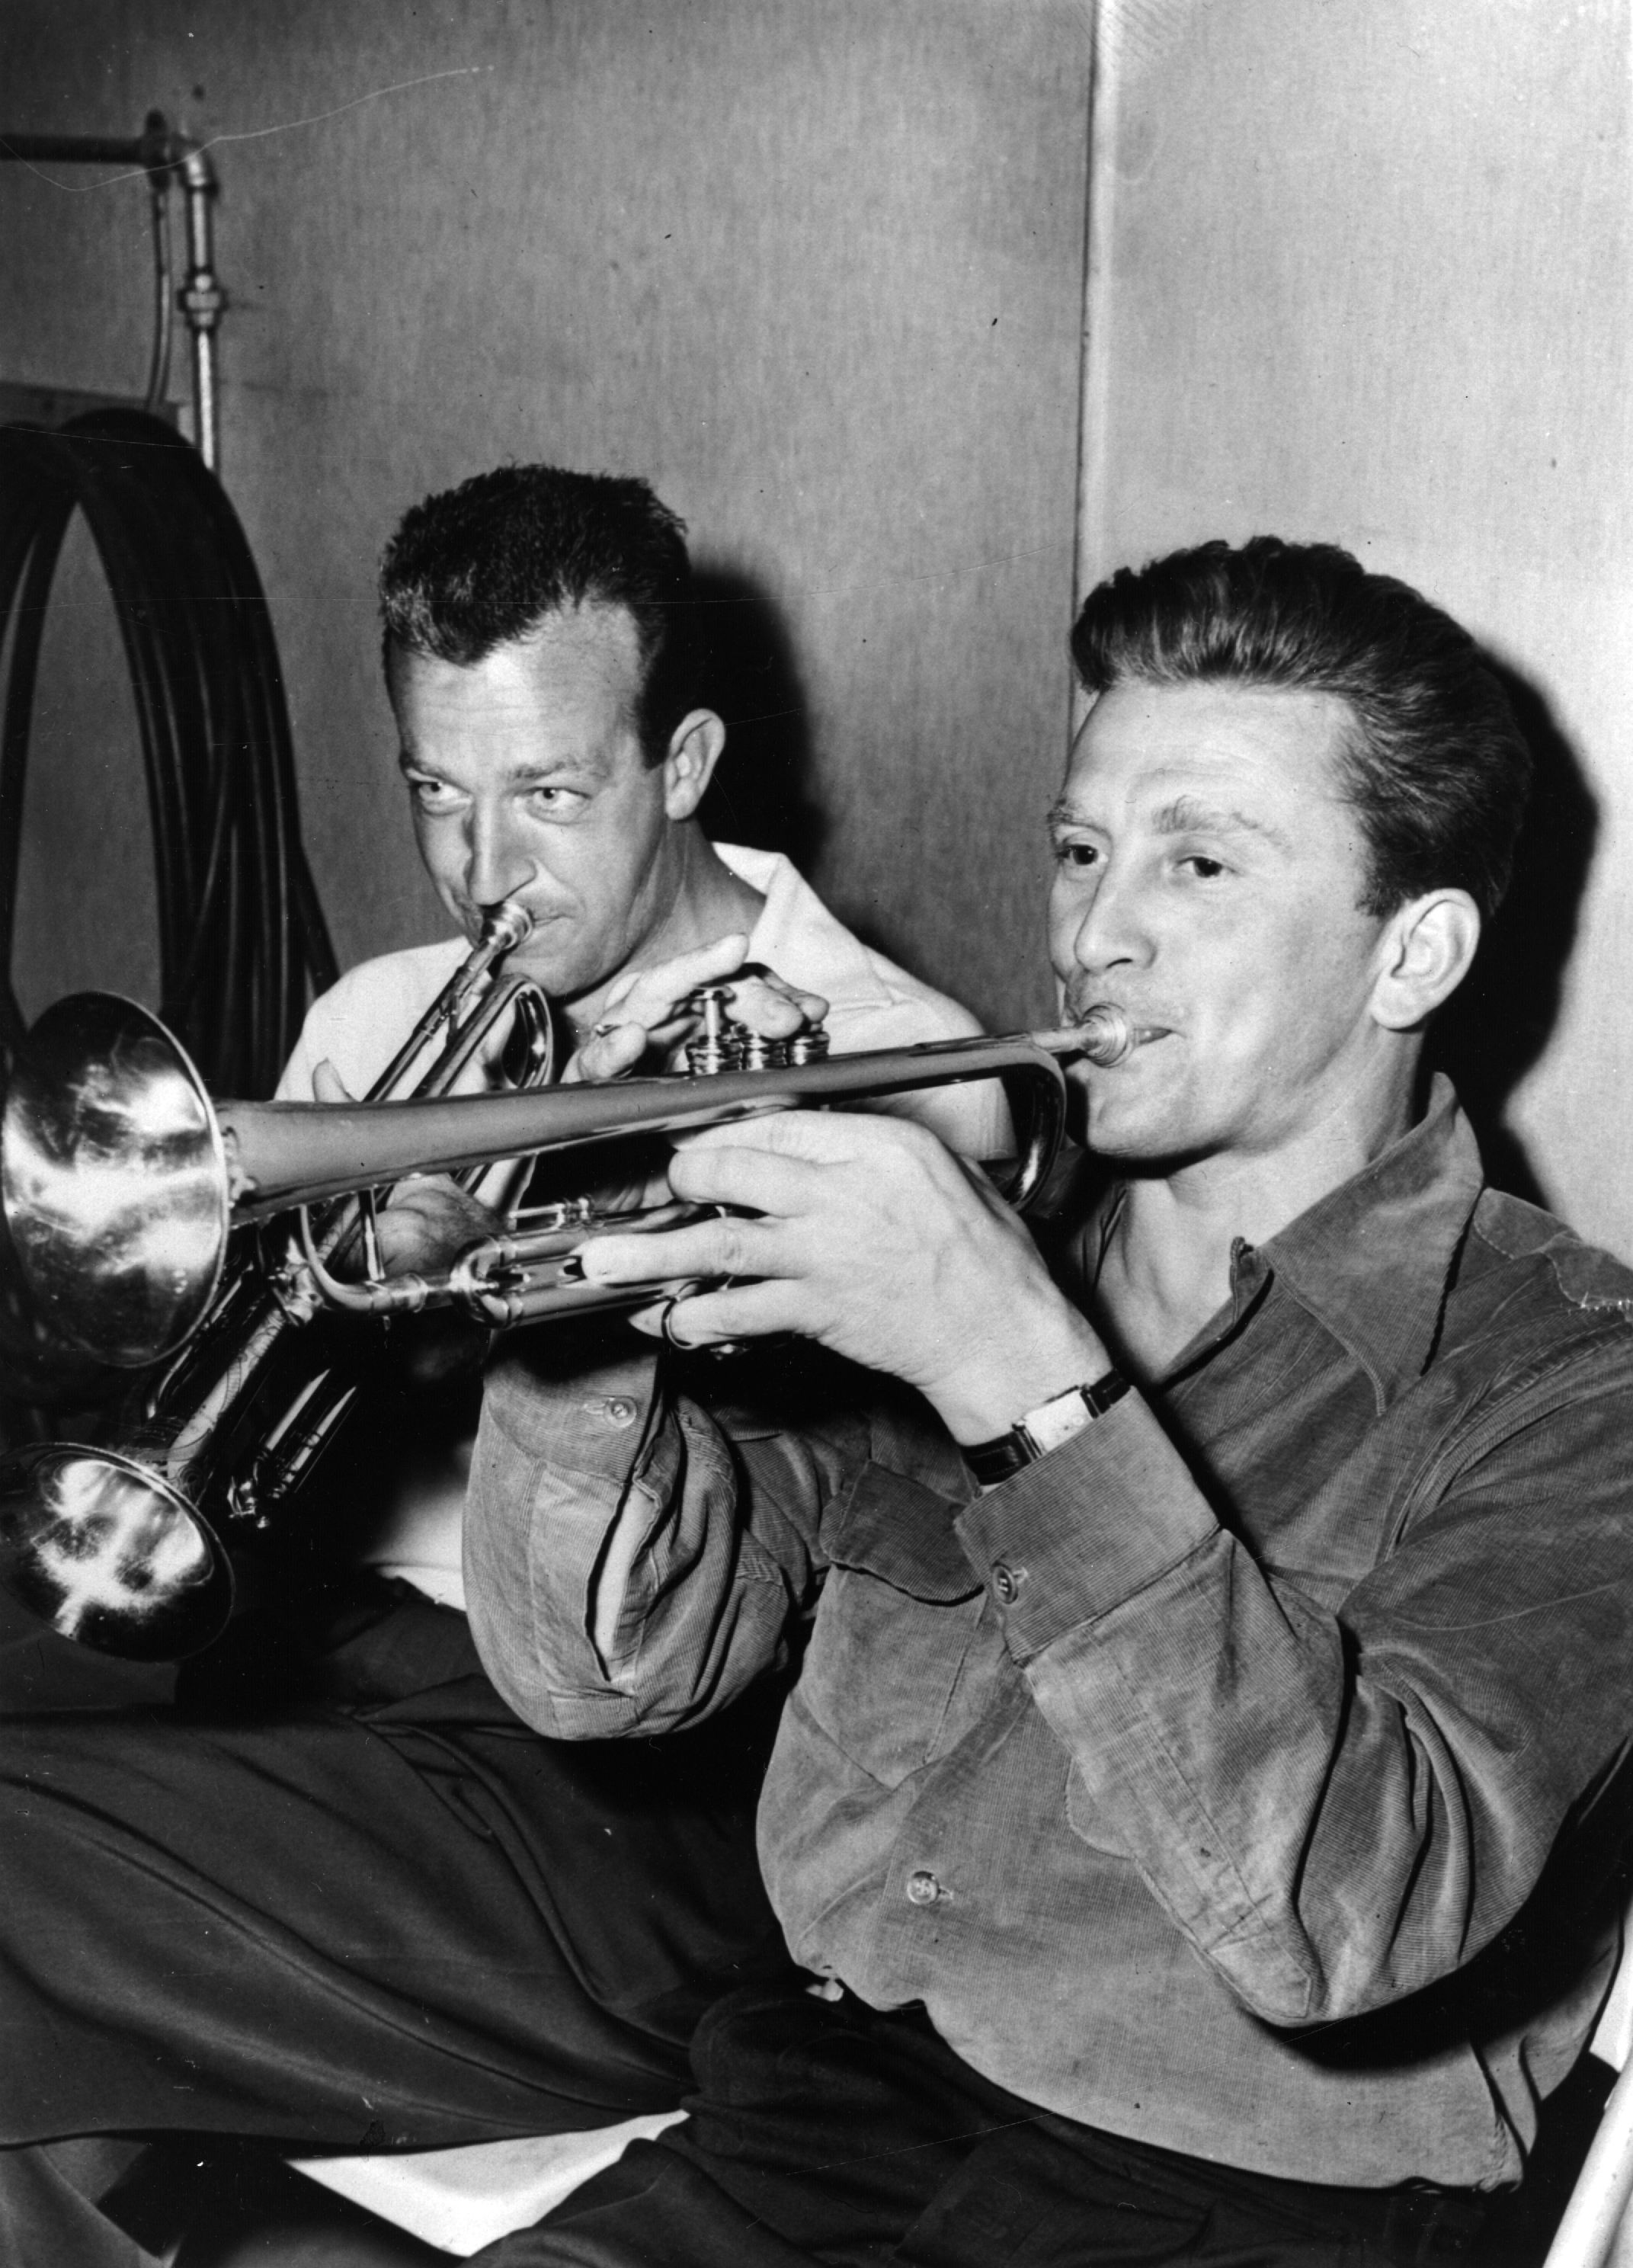 Douglas plays the trumpet with bandleader and trumpeter Harry James.